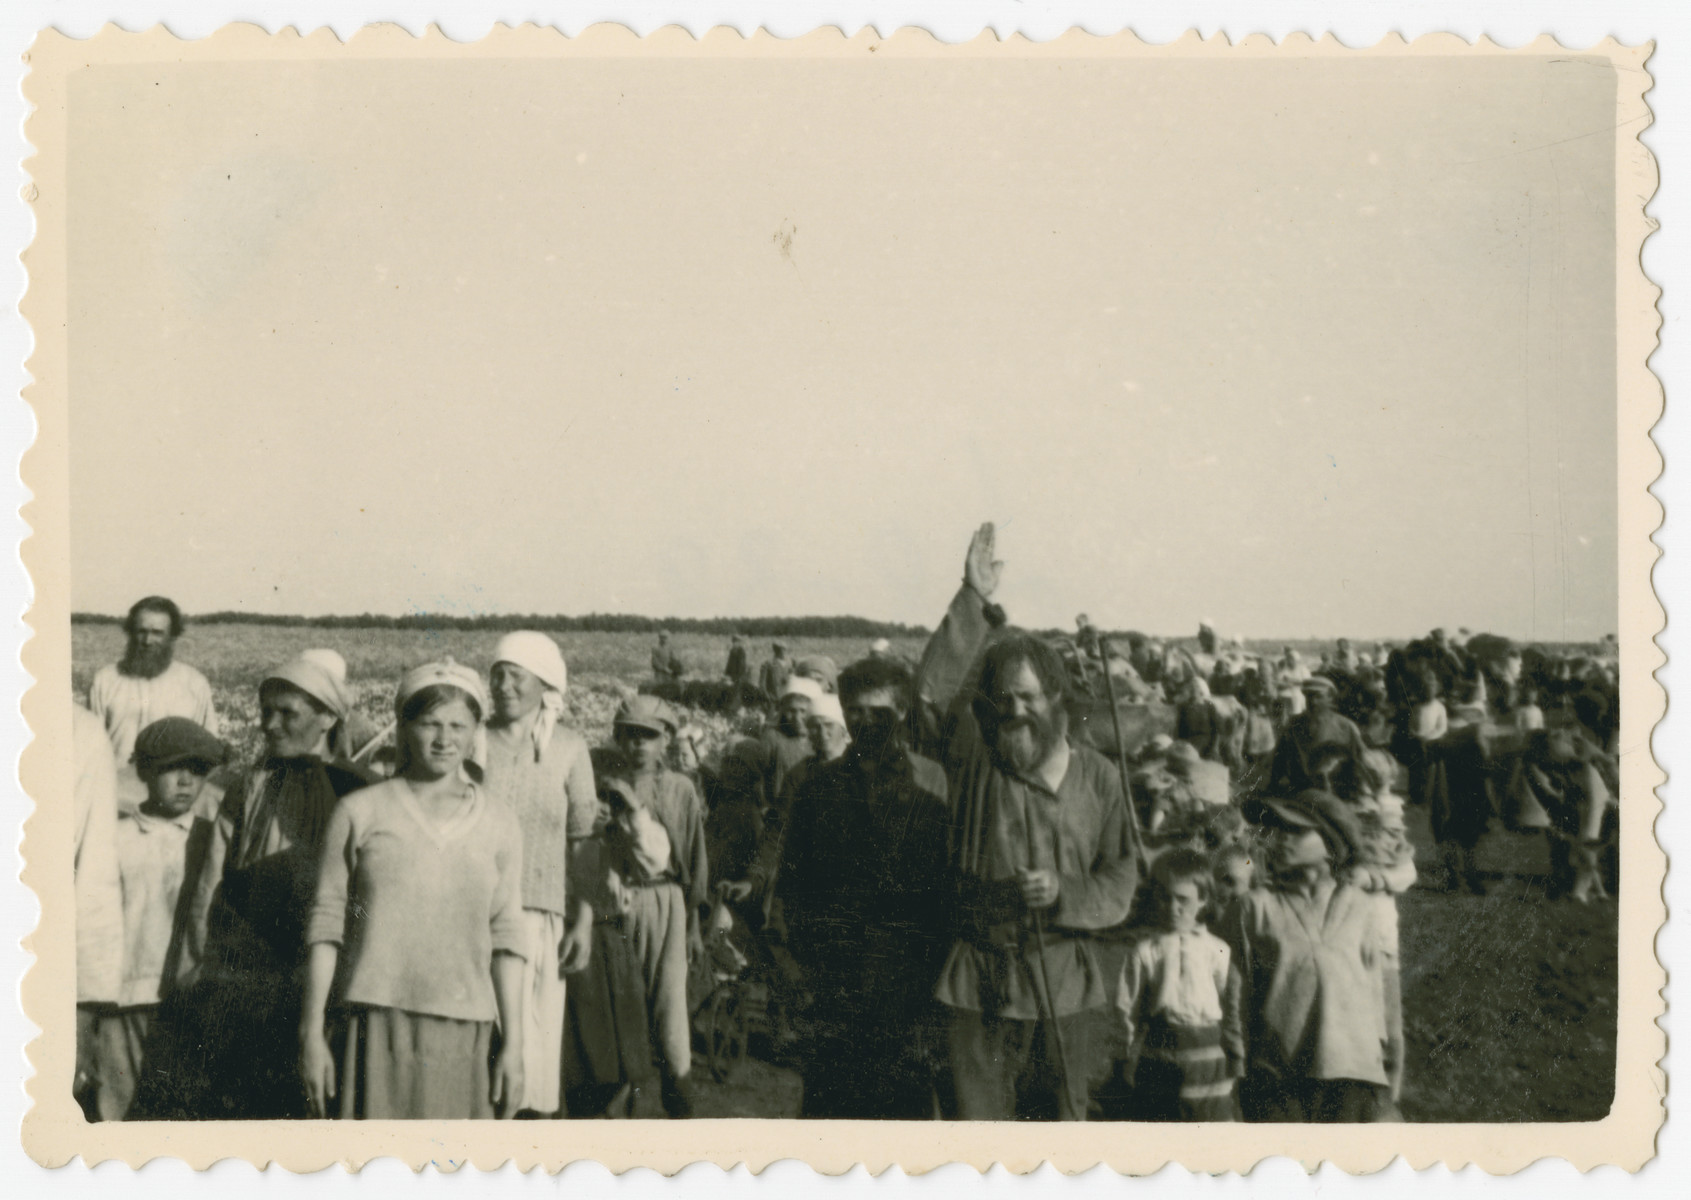 Photograph of a large number of civilians, among them many children, taken by a Hungarian soldier following the invasion of the Soviet Union.